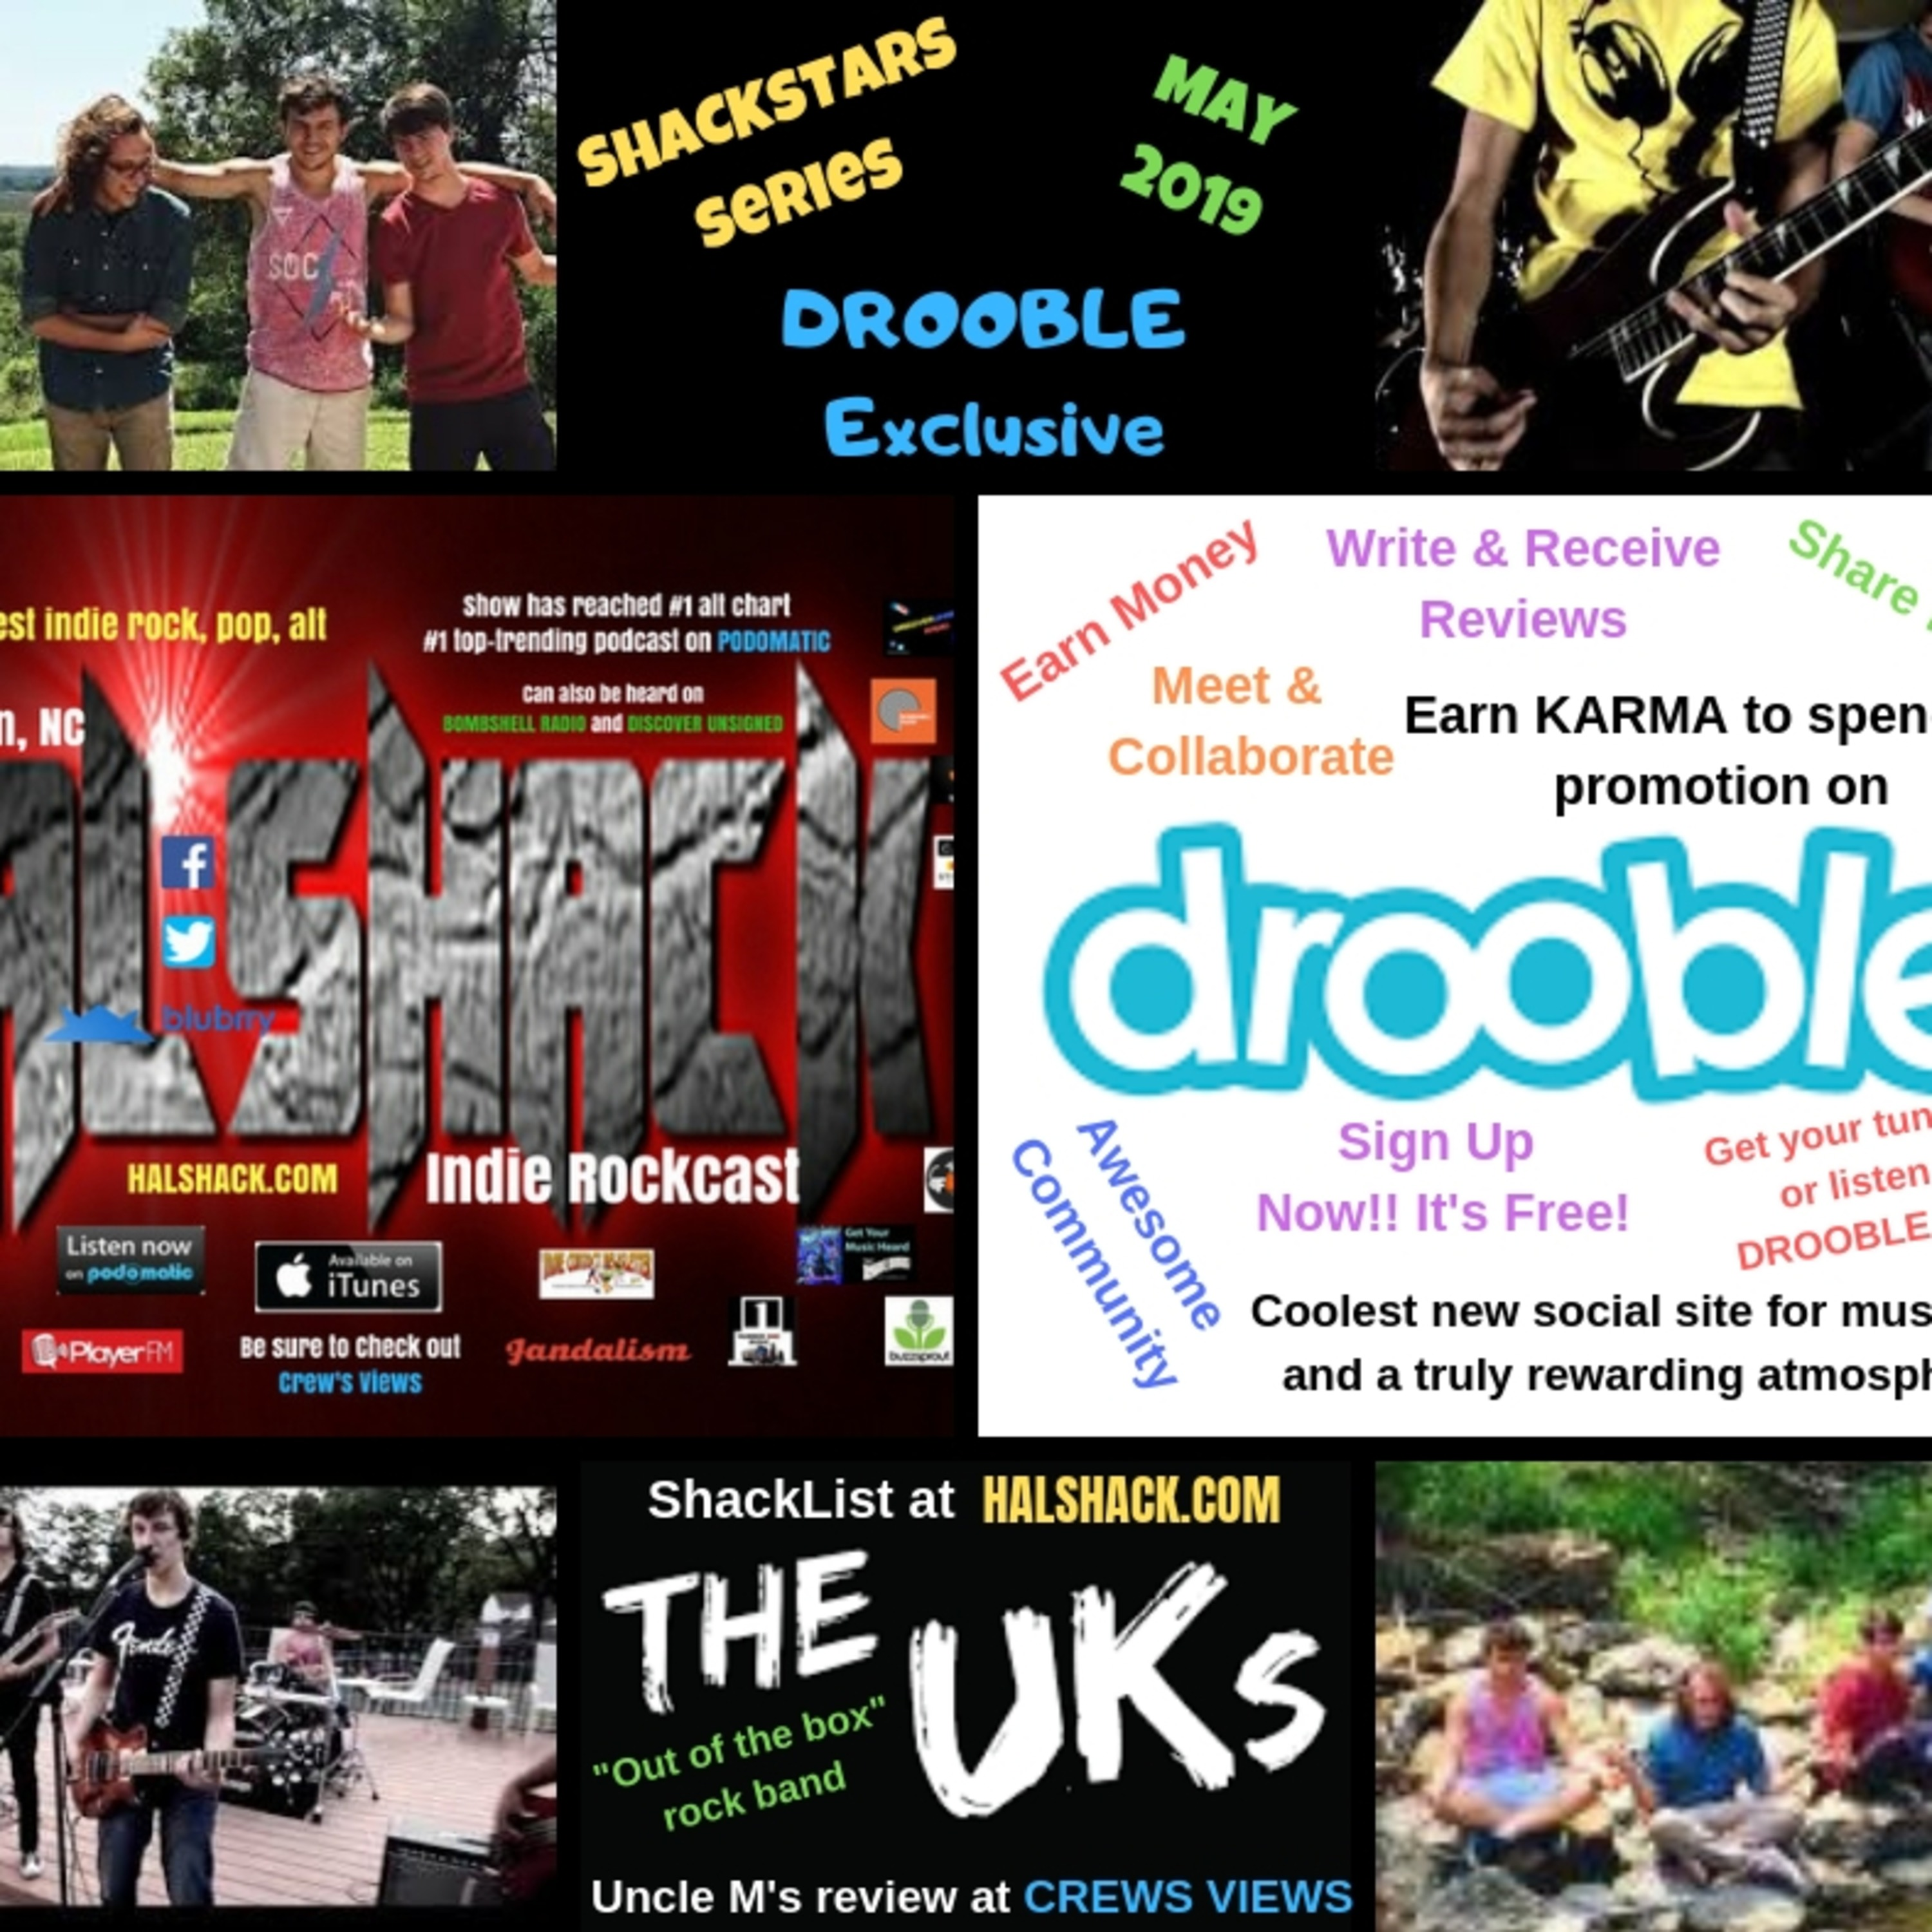 Halshack (The Uk's) Kansas City, MO-- Shackstars series (Drooble excl) now on Podomatic 6/30/19